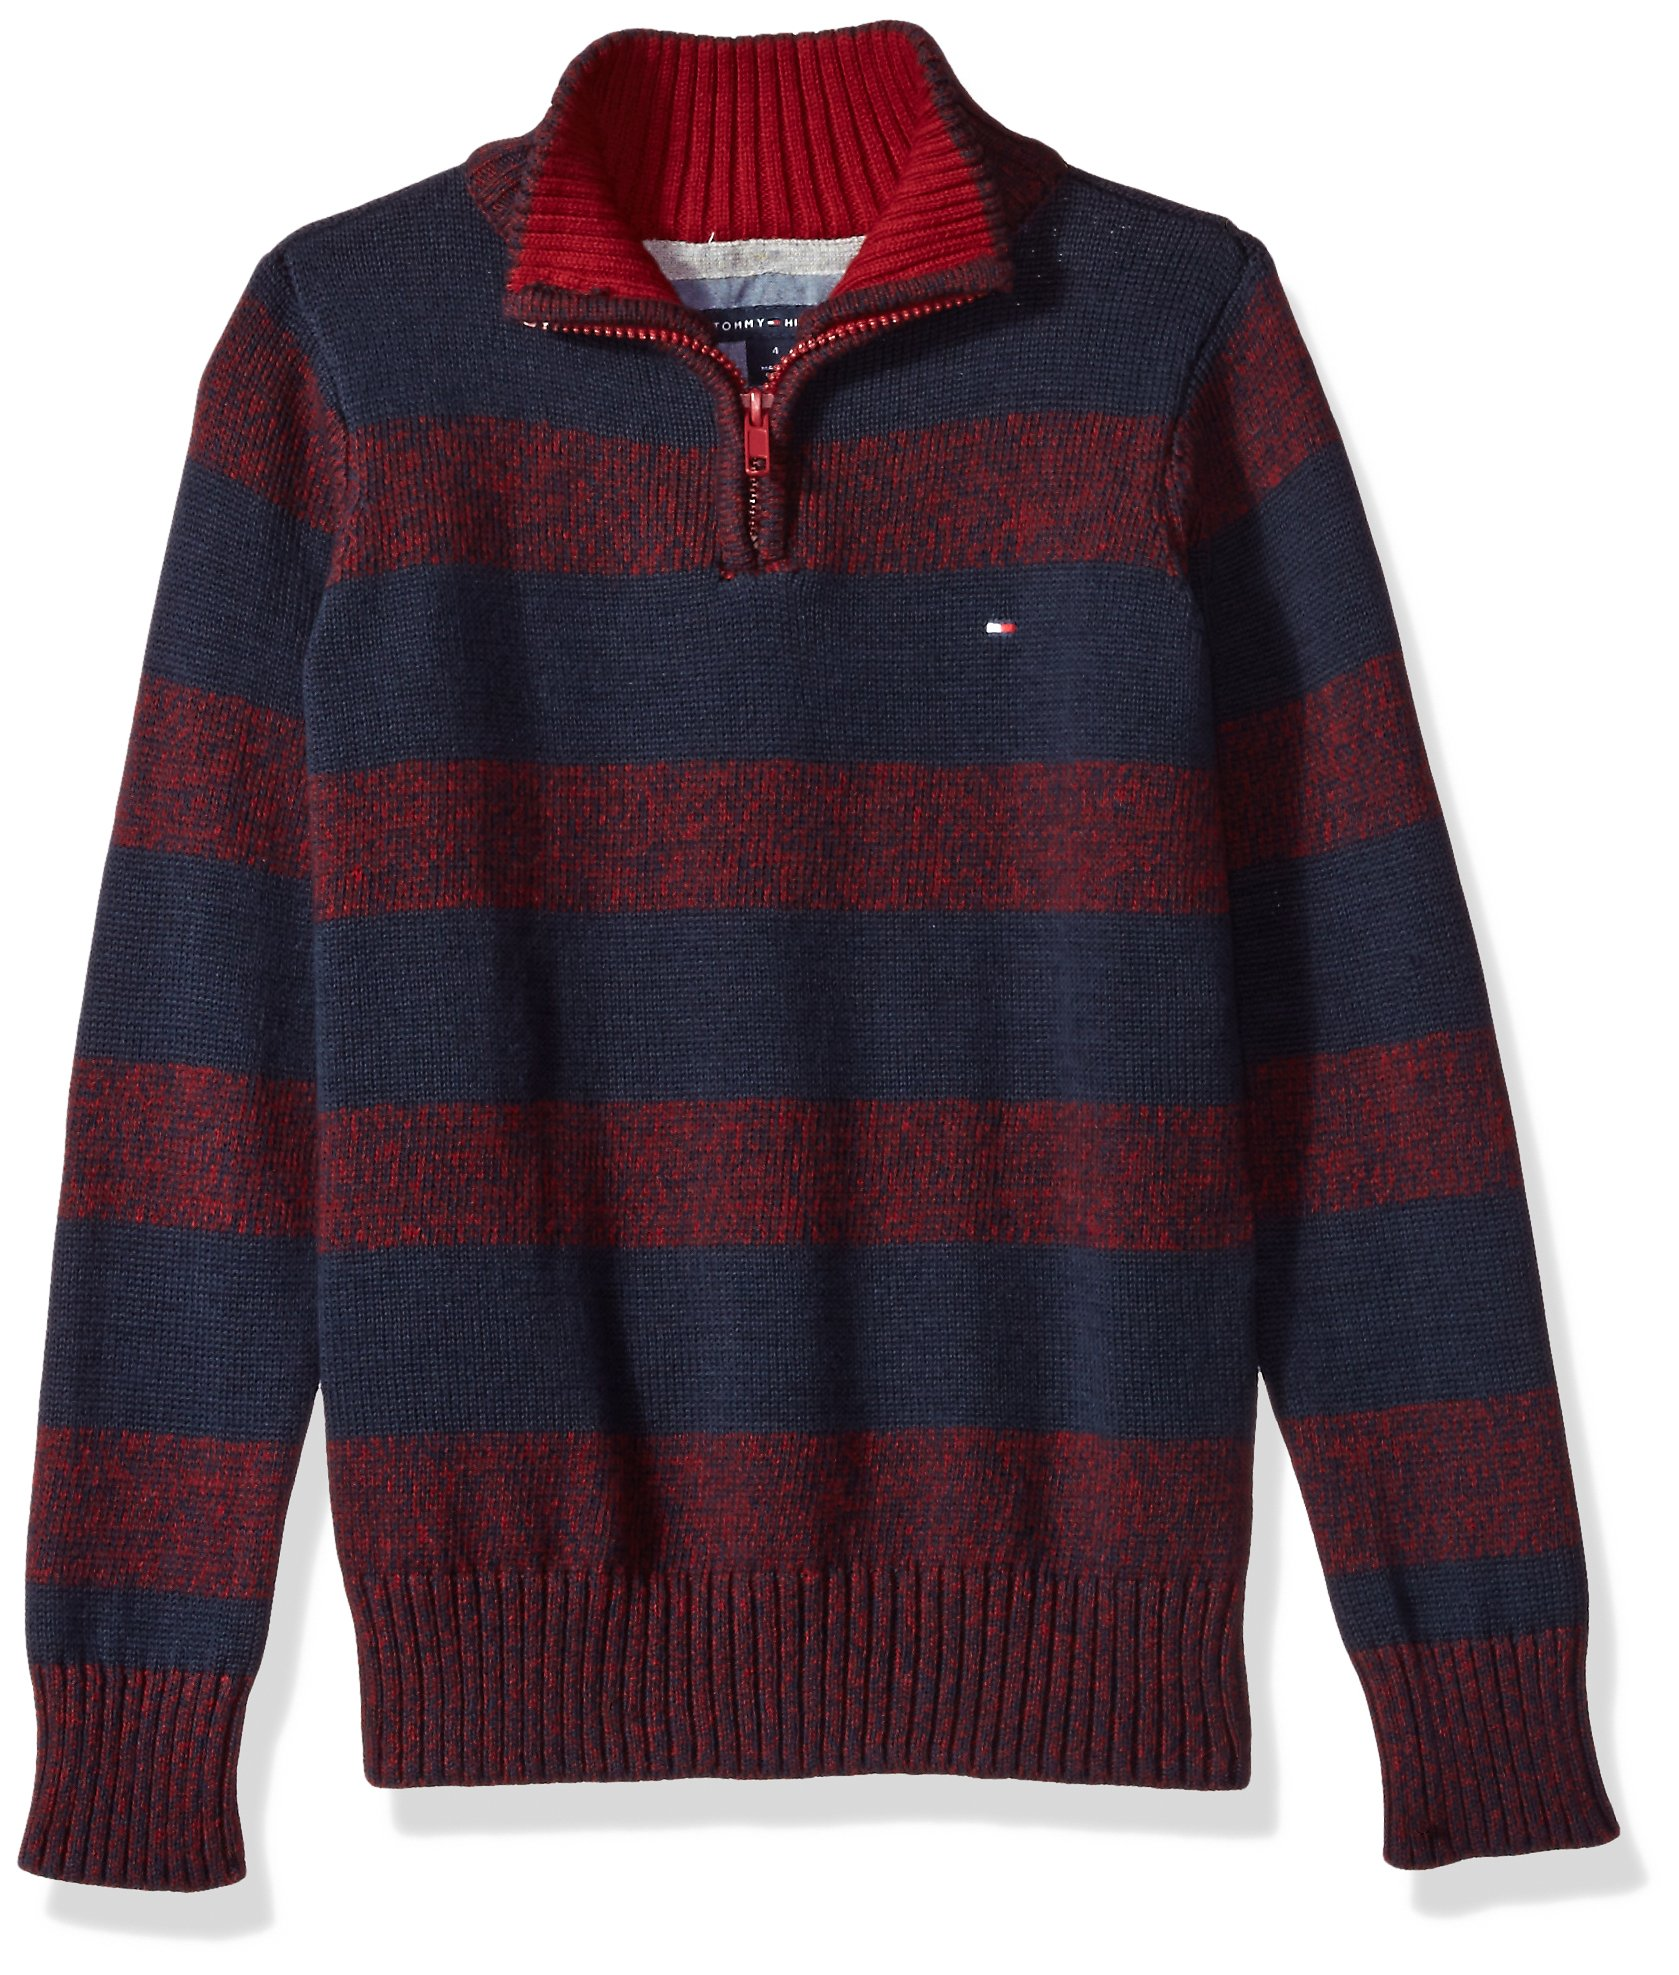 Tommy Hilfiger Little Boys' Long Sleeve Half Zip Pullover Sweater, Biking Red, 4